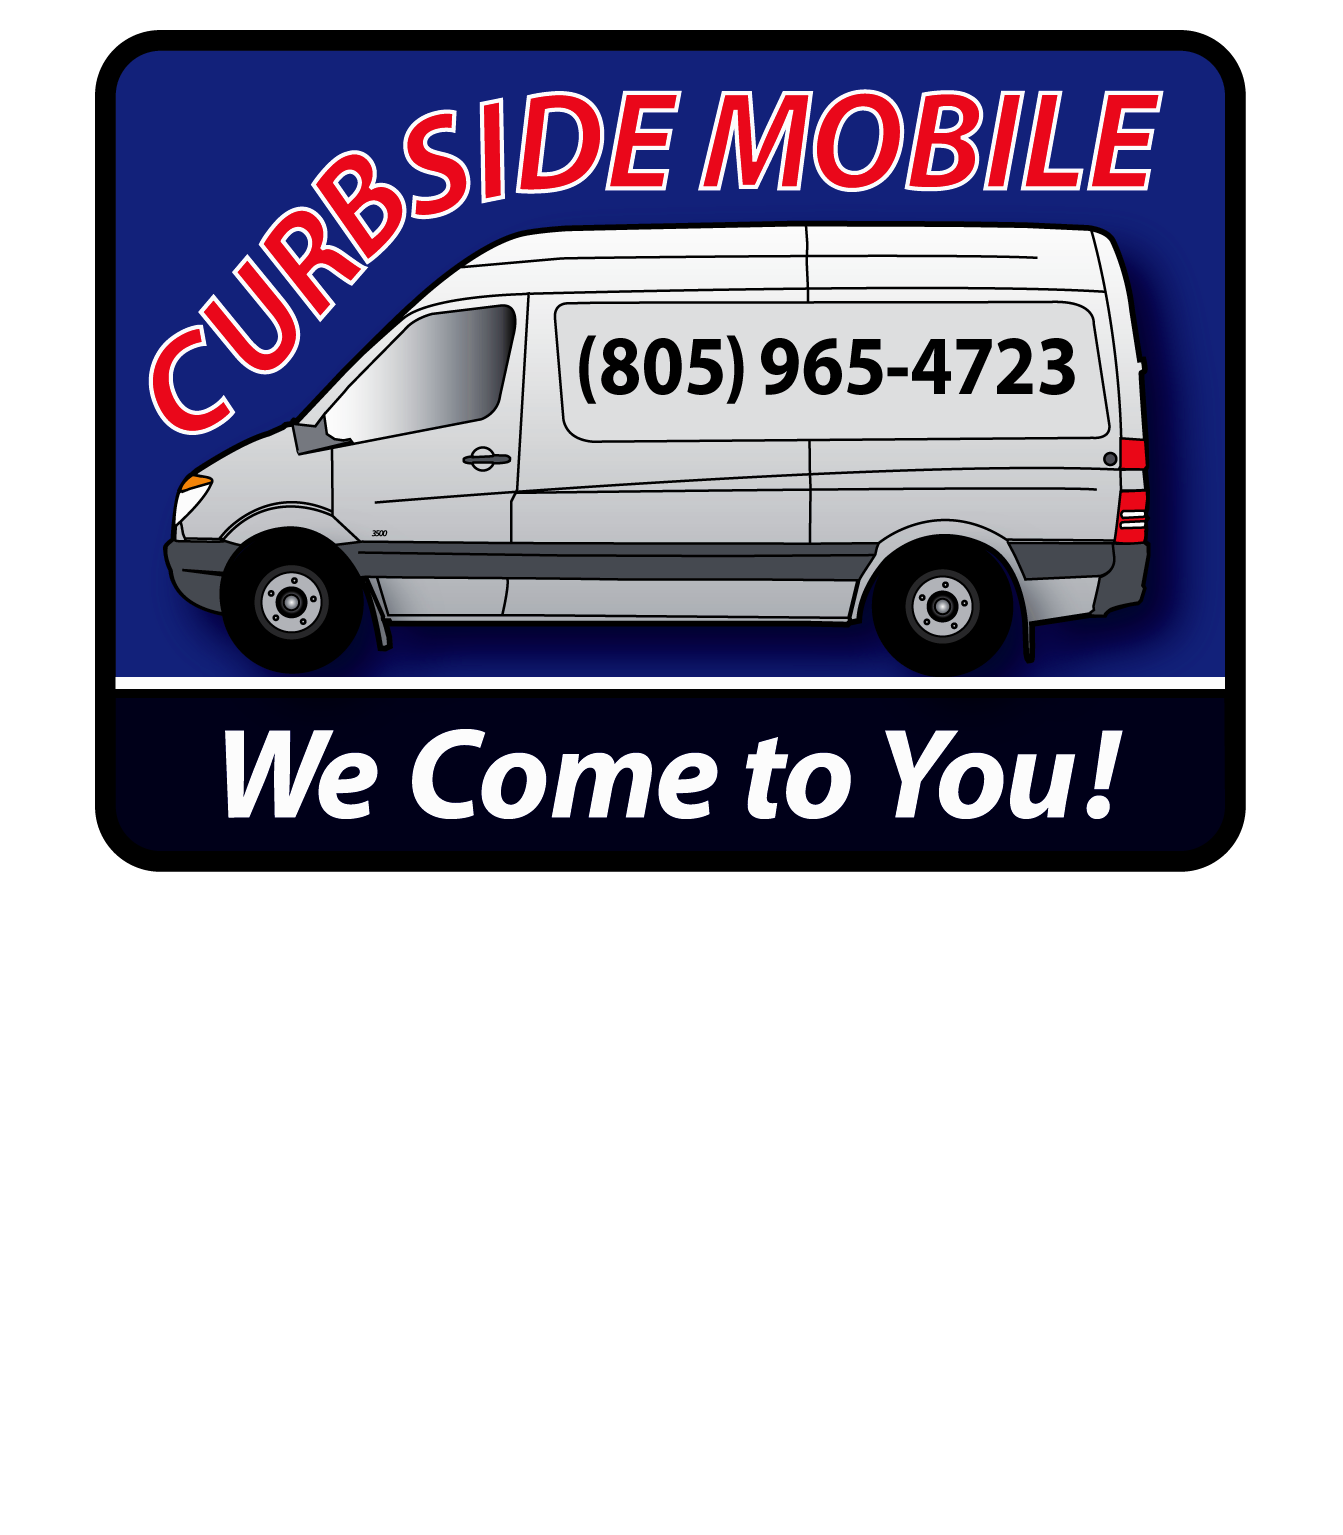 Los Angeles Lexus Service Coupons >> Curbside Auto Repair and Service-We Come To You! Coupons near me in   8coupons